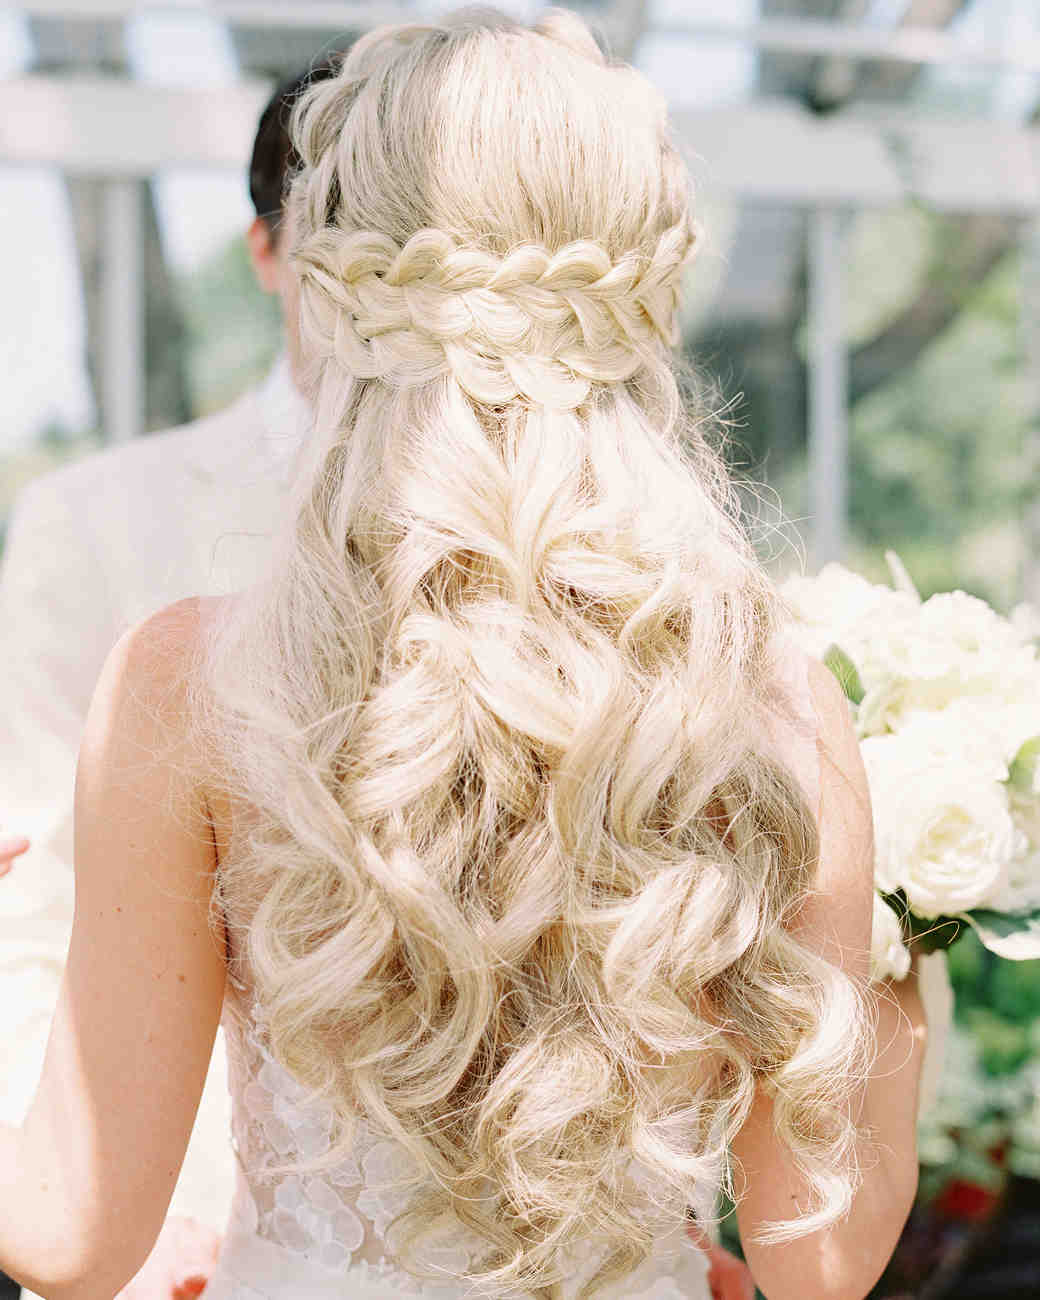 Half Up Half Down Braided Wedding Hairstyles: 28 Half-Up, Half-Down Wedding Hairstyles We Love